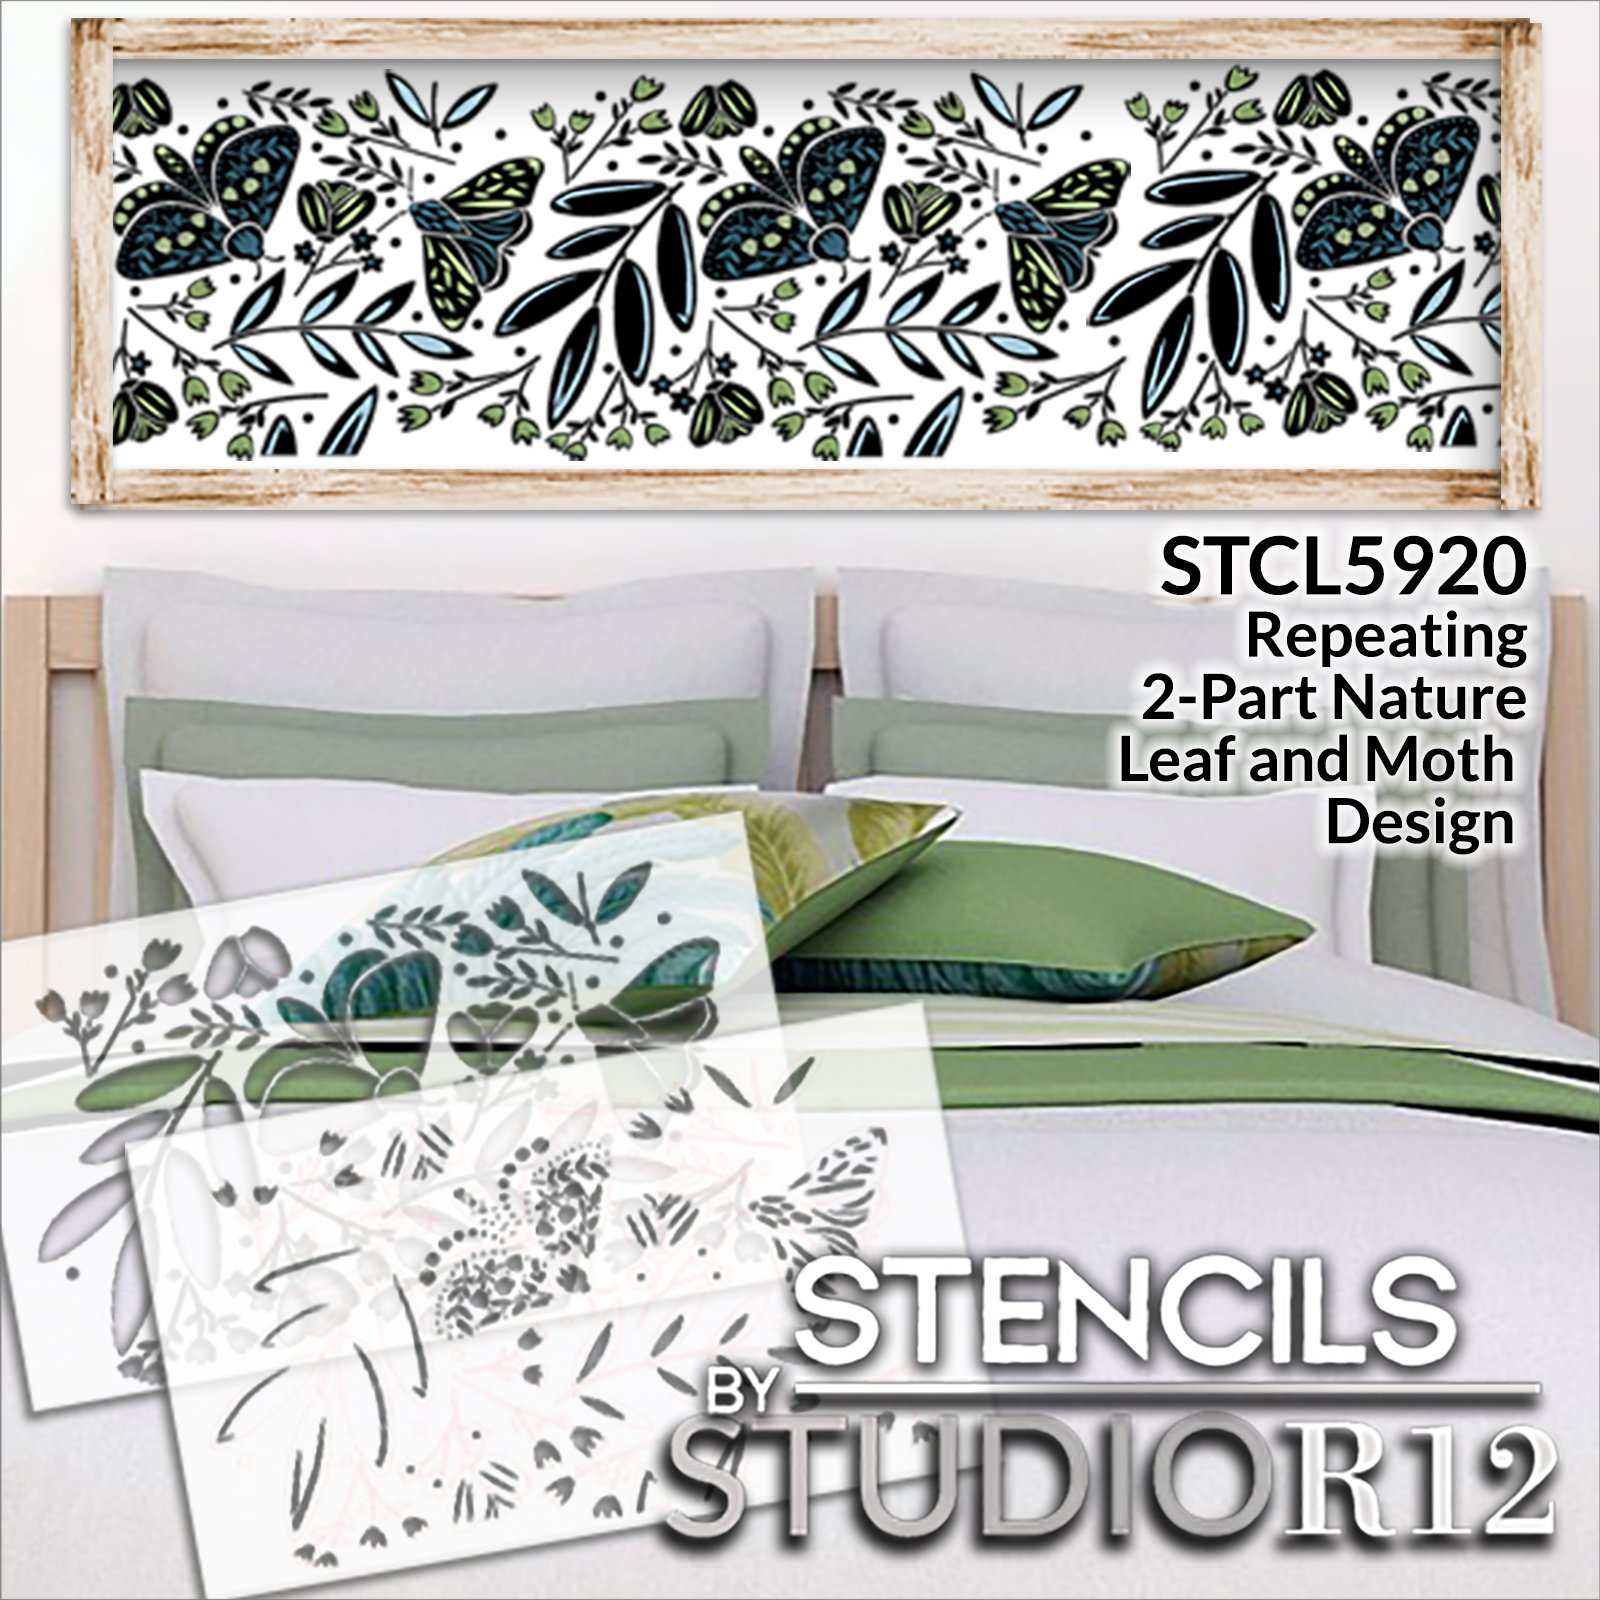 Nature Leaf Moth Flowers 2-Part Stencil by StudioR12 | DIY Floral Home Decor | Craft & Paint Wood Sign | Reusable Mylar Template | Select Size